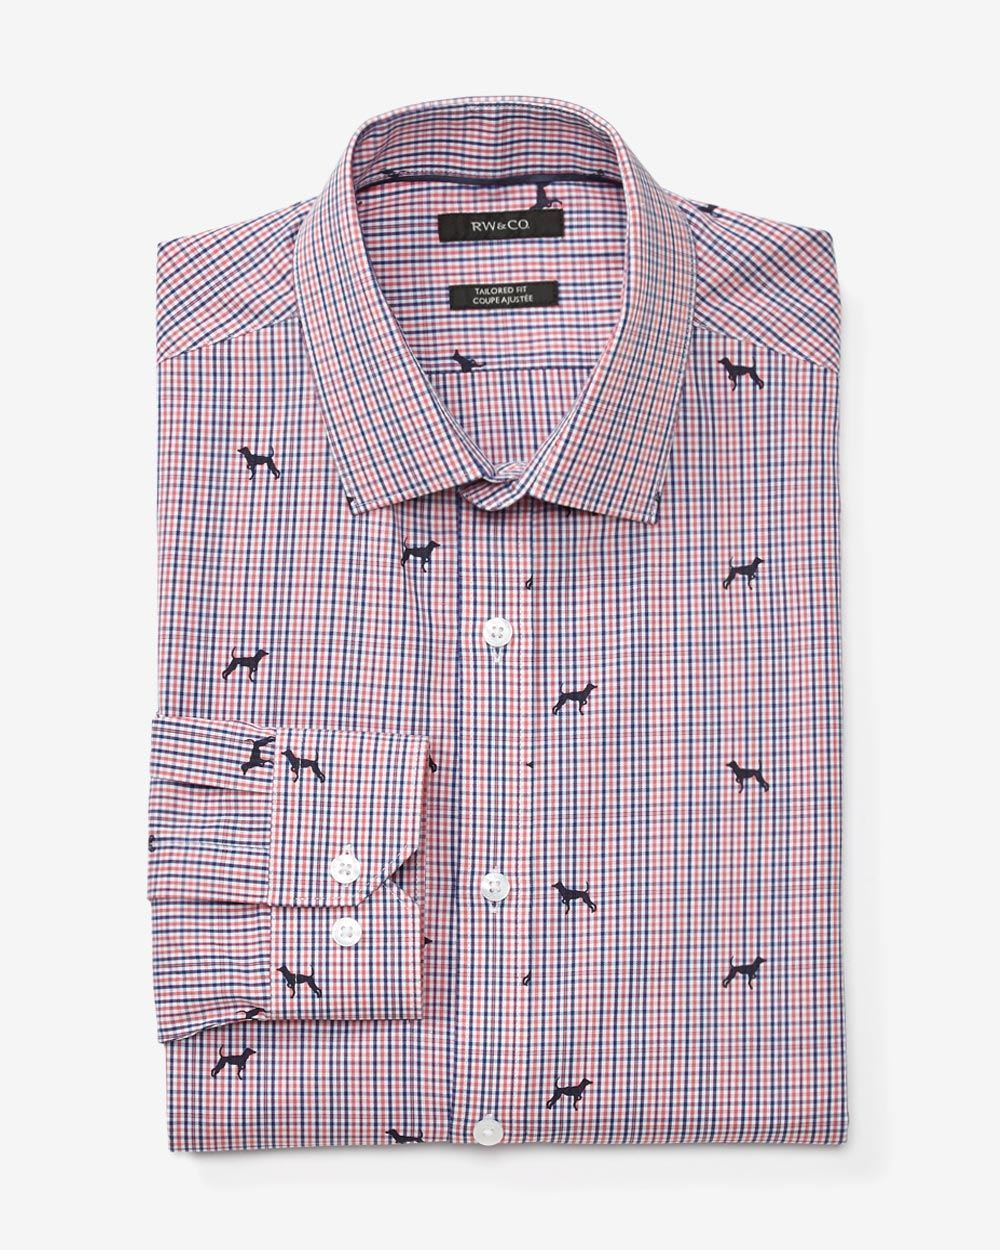 Tailored fit dress shirt with dog print check